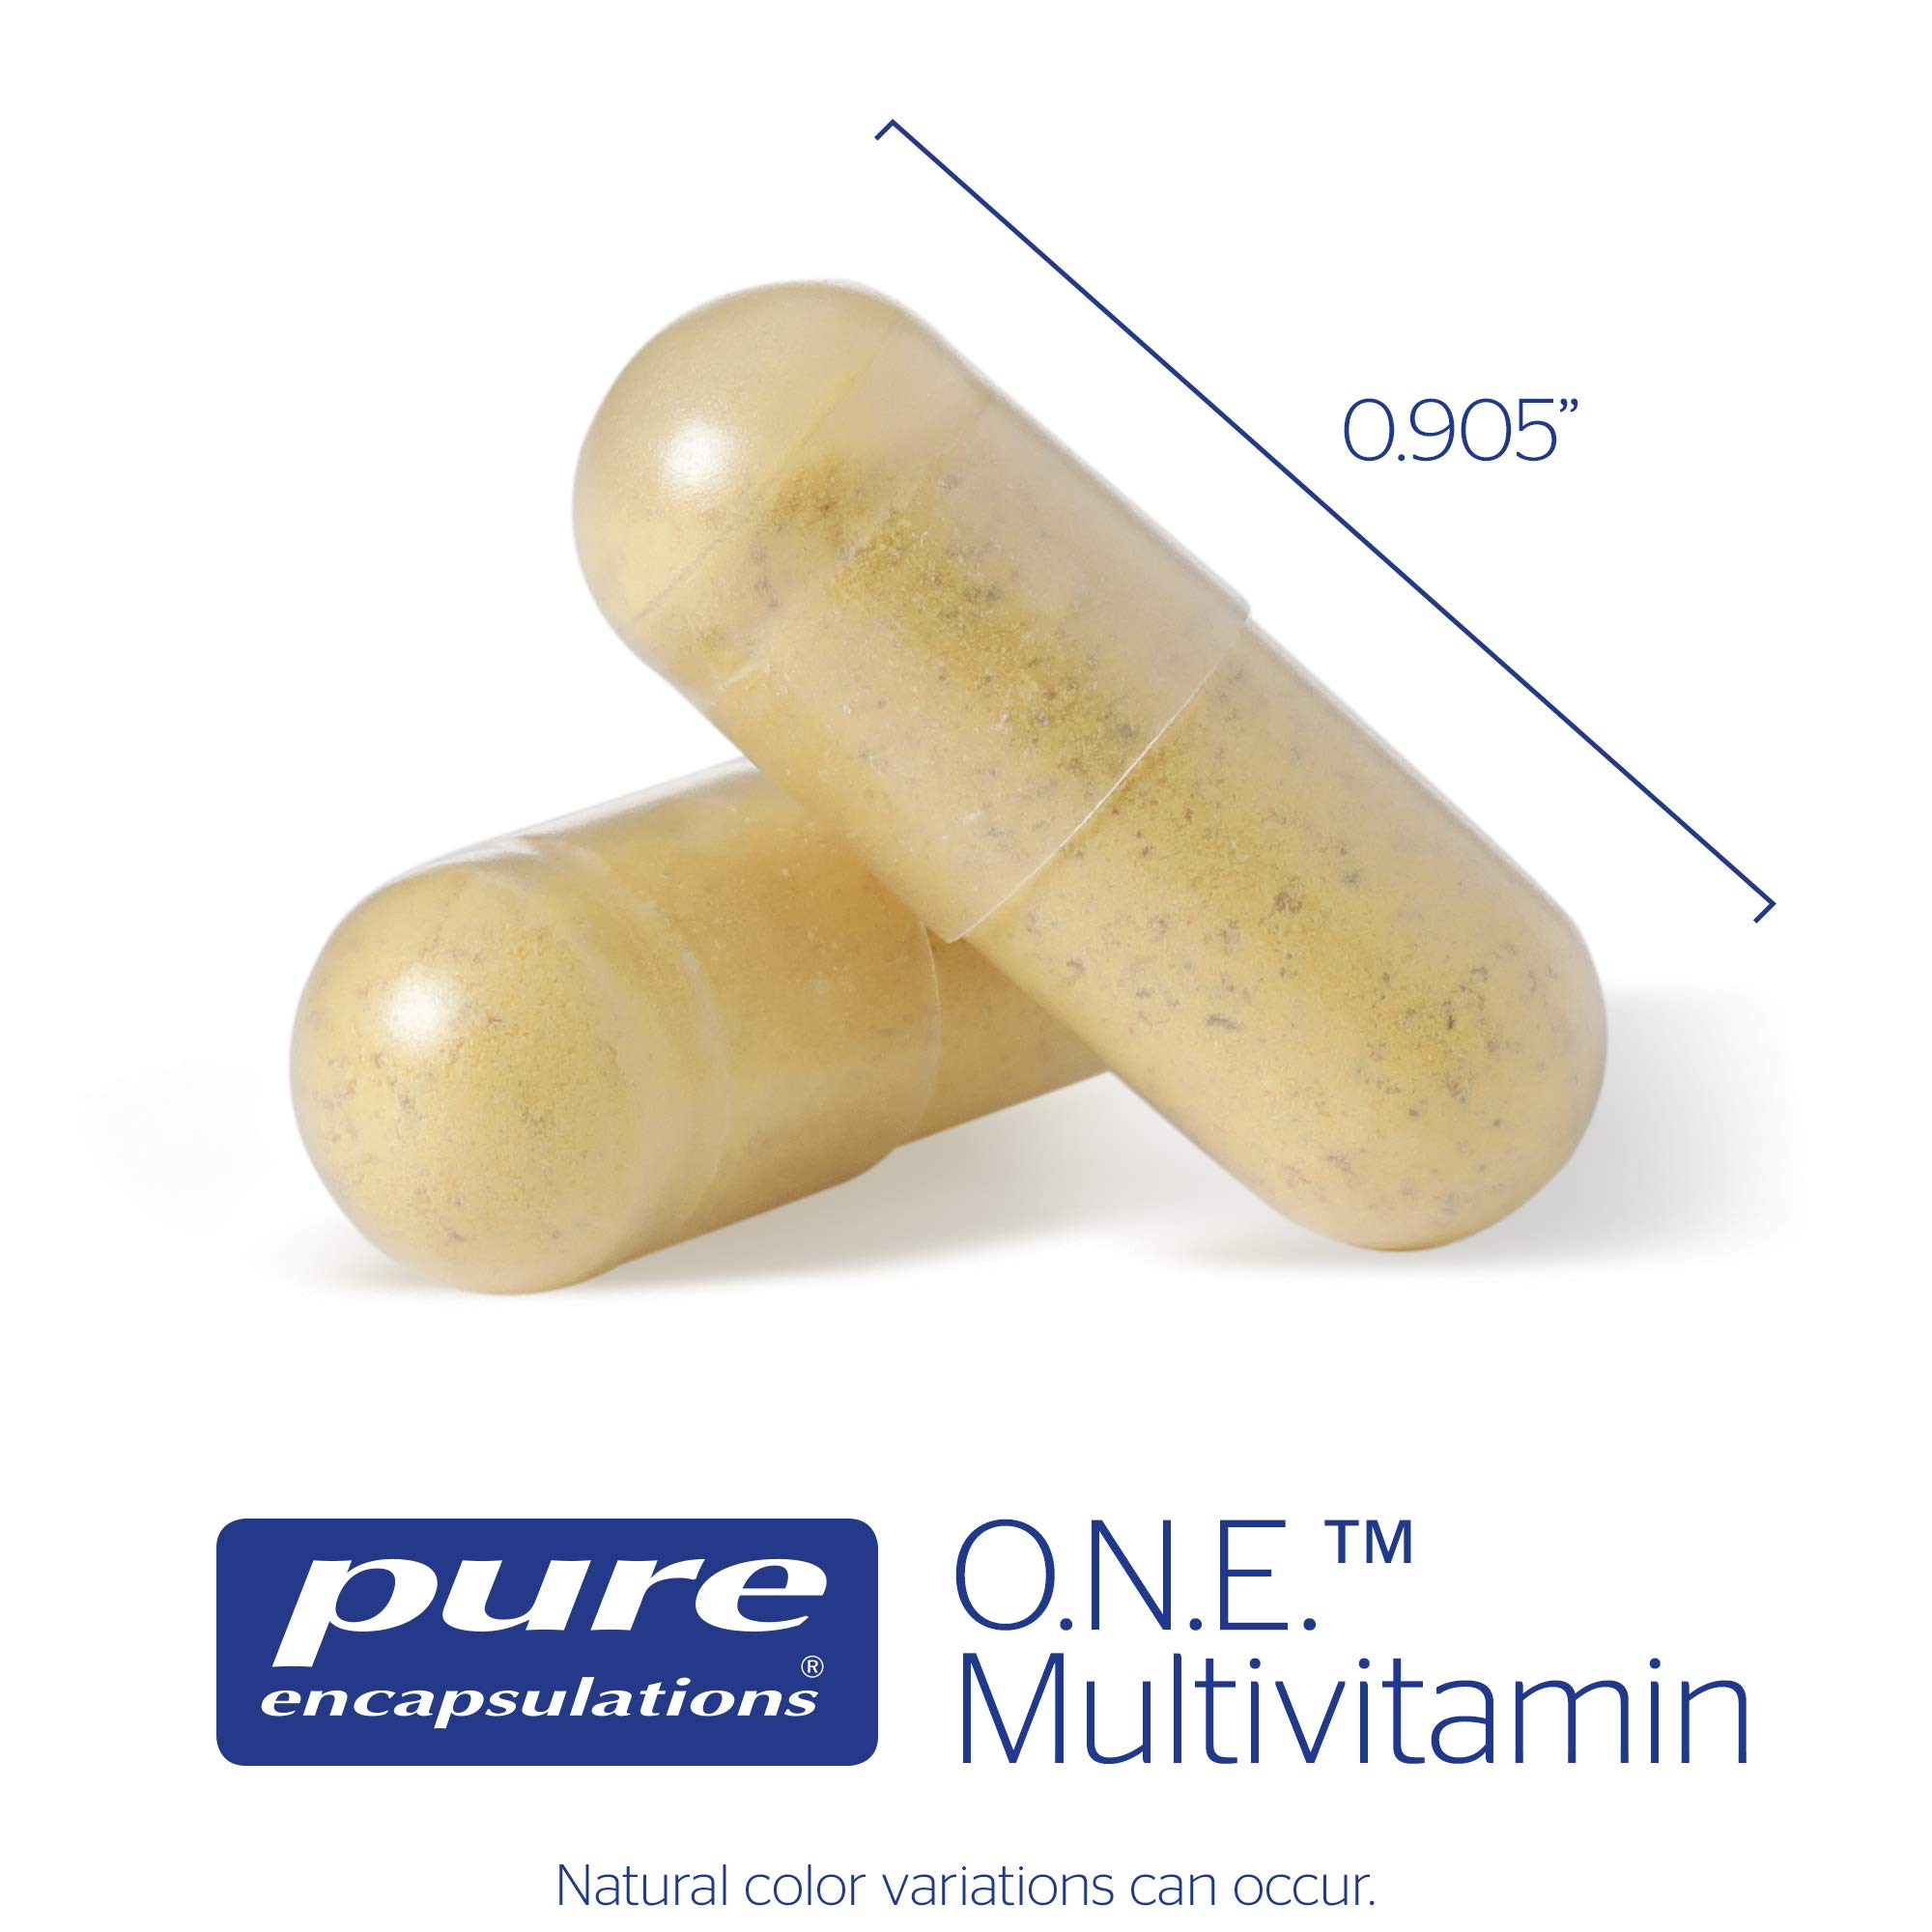 Pure Encapsulations - O.N.E. Multivitamin - Once Daily Nutrient Essentials with Metafolin L-5-MTHF and Sustained Release CoQ10 - Hypoallergenic Dietary Supplement - 60 Capsules by Pure Encapsulations (Image #2)